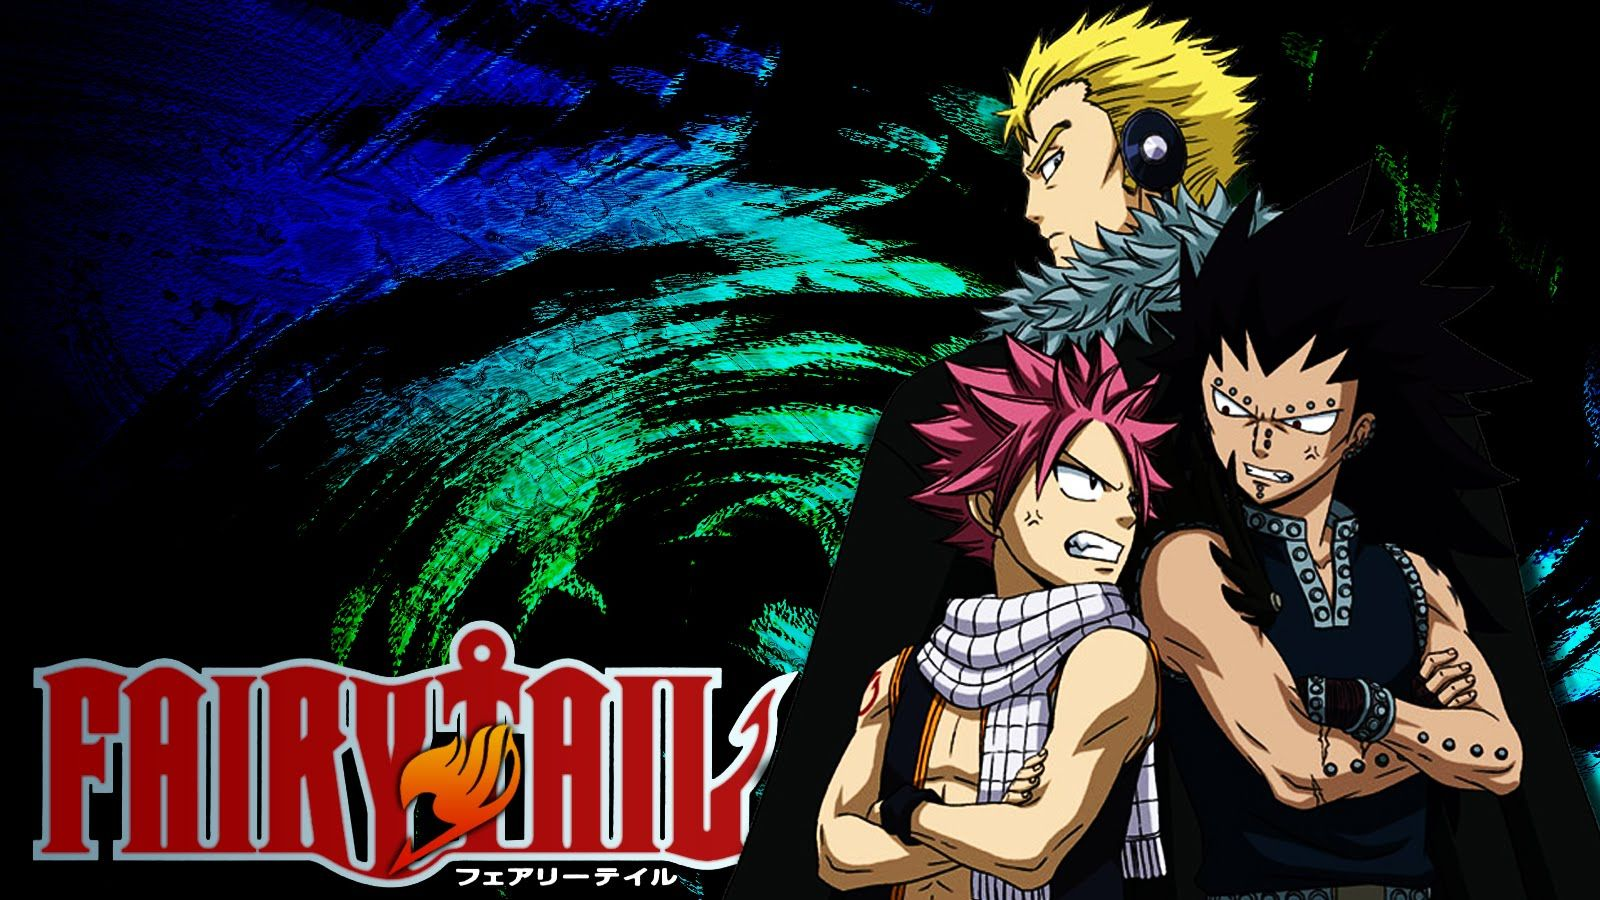 Fairytail 2015 Wallpapers - Wallpaper Cave